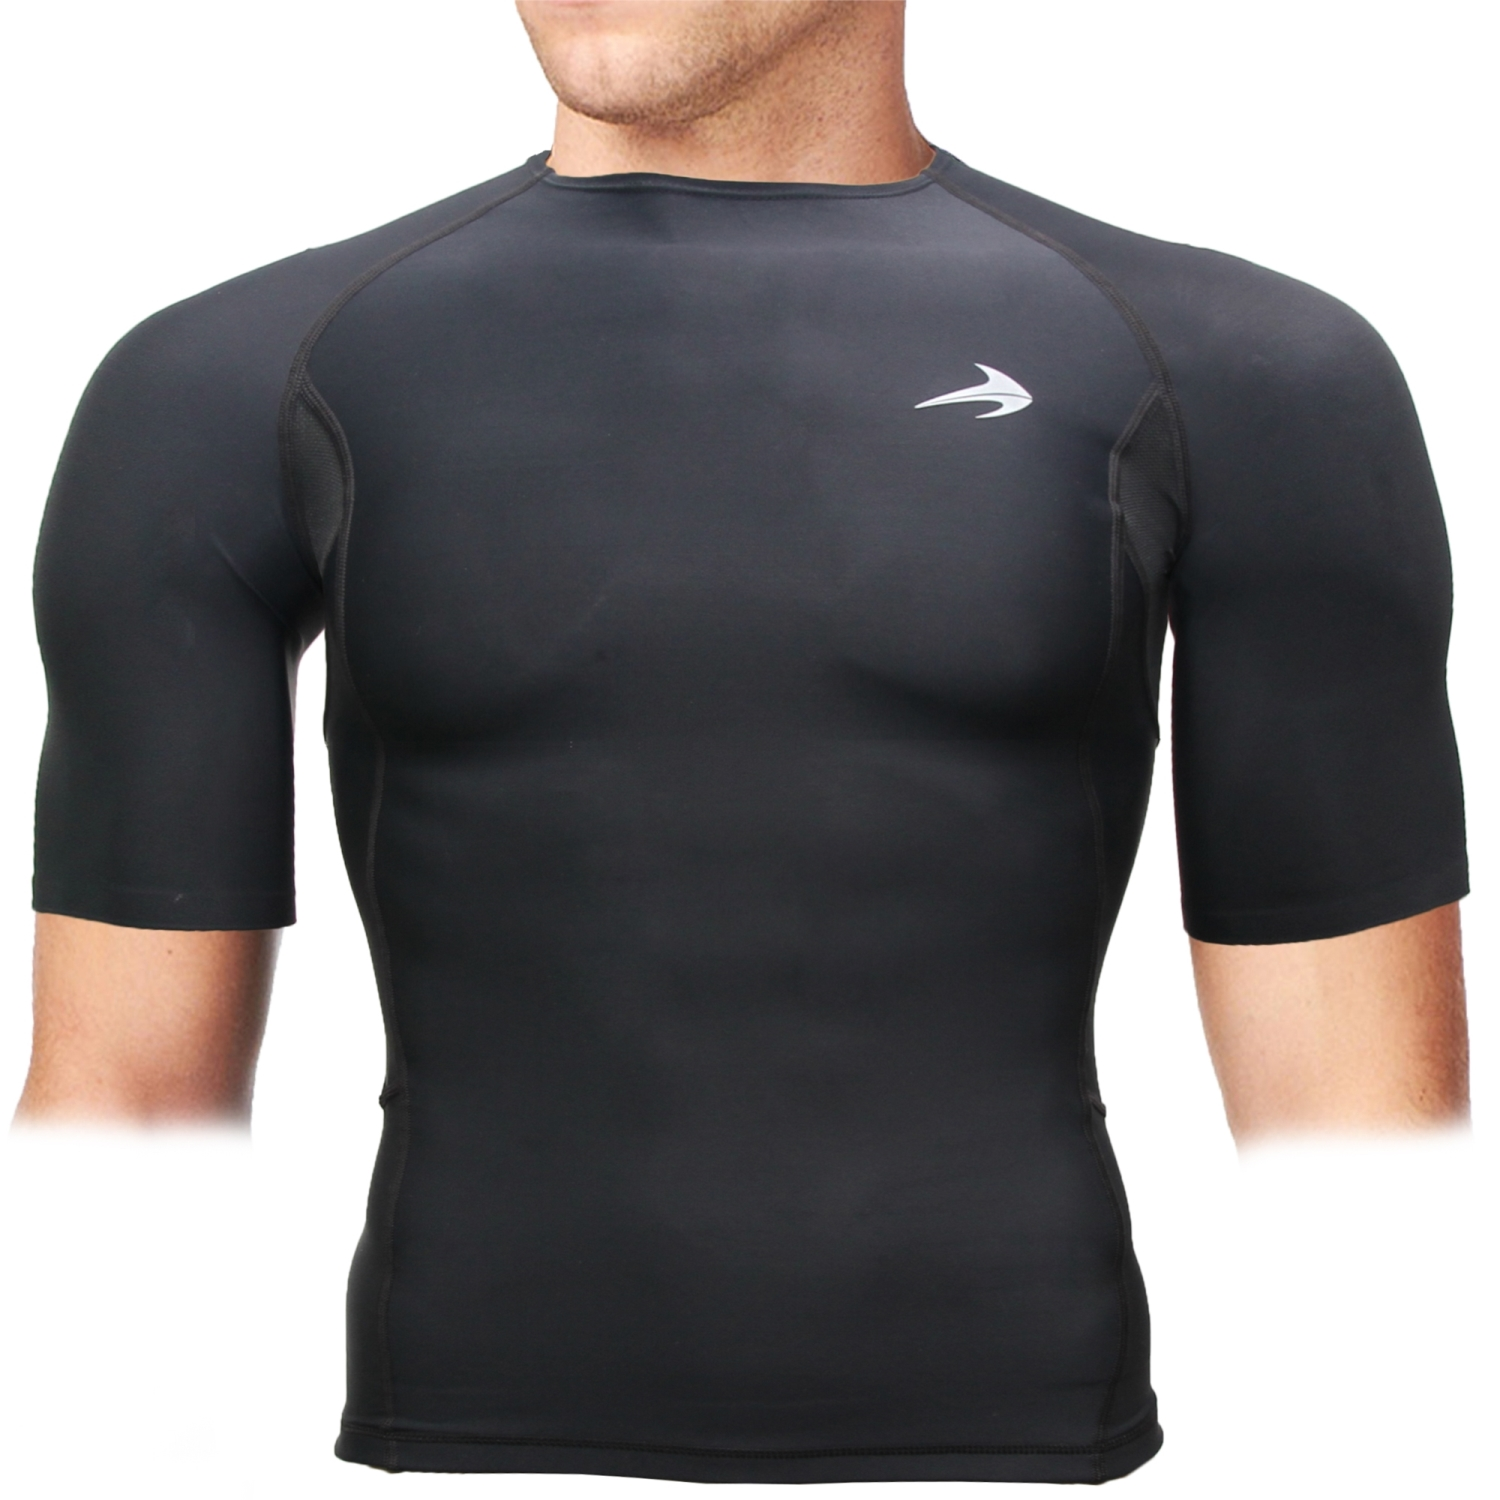 CompressionZ Black Compression Short Sleeve Shirt Top (XL) - Comfortable Fitting